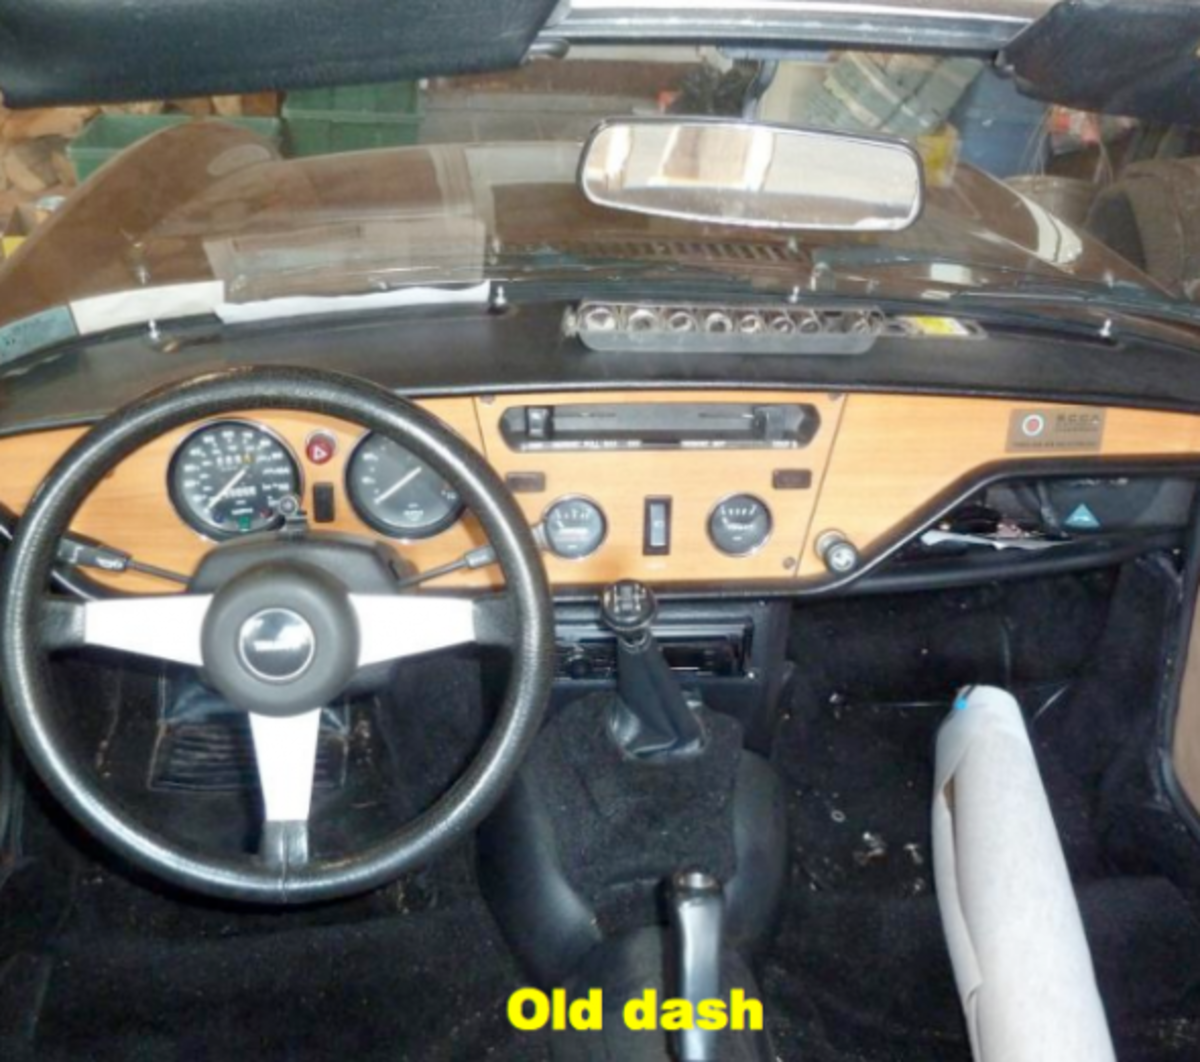 The Old Dash